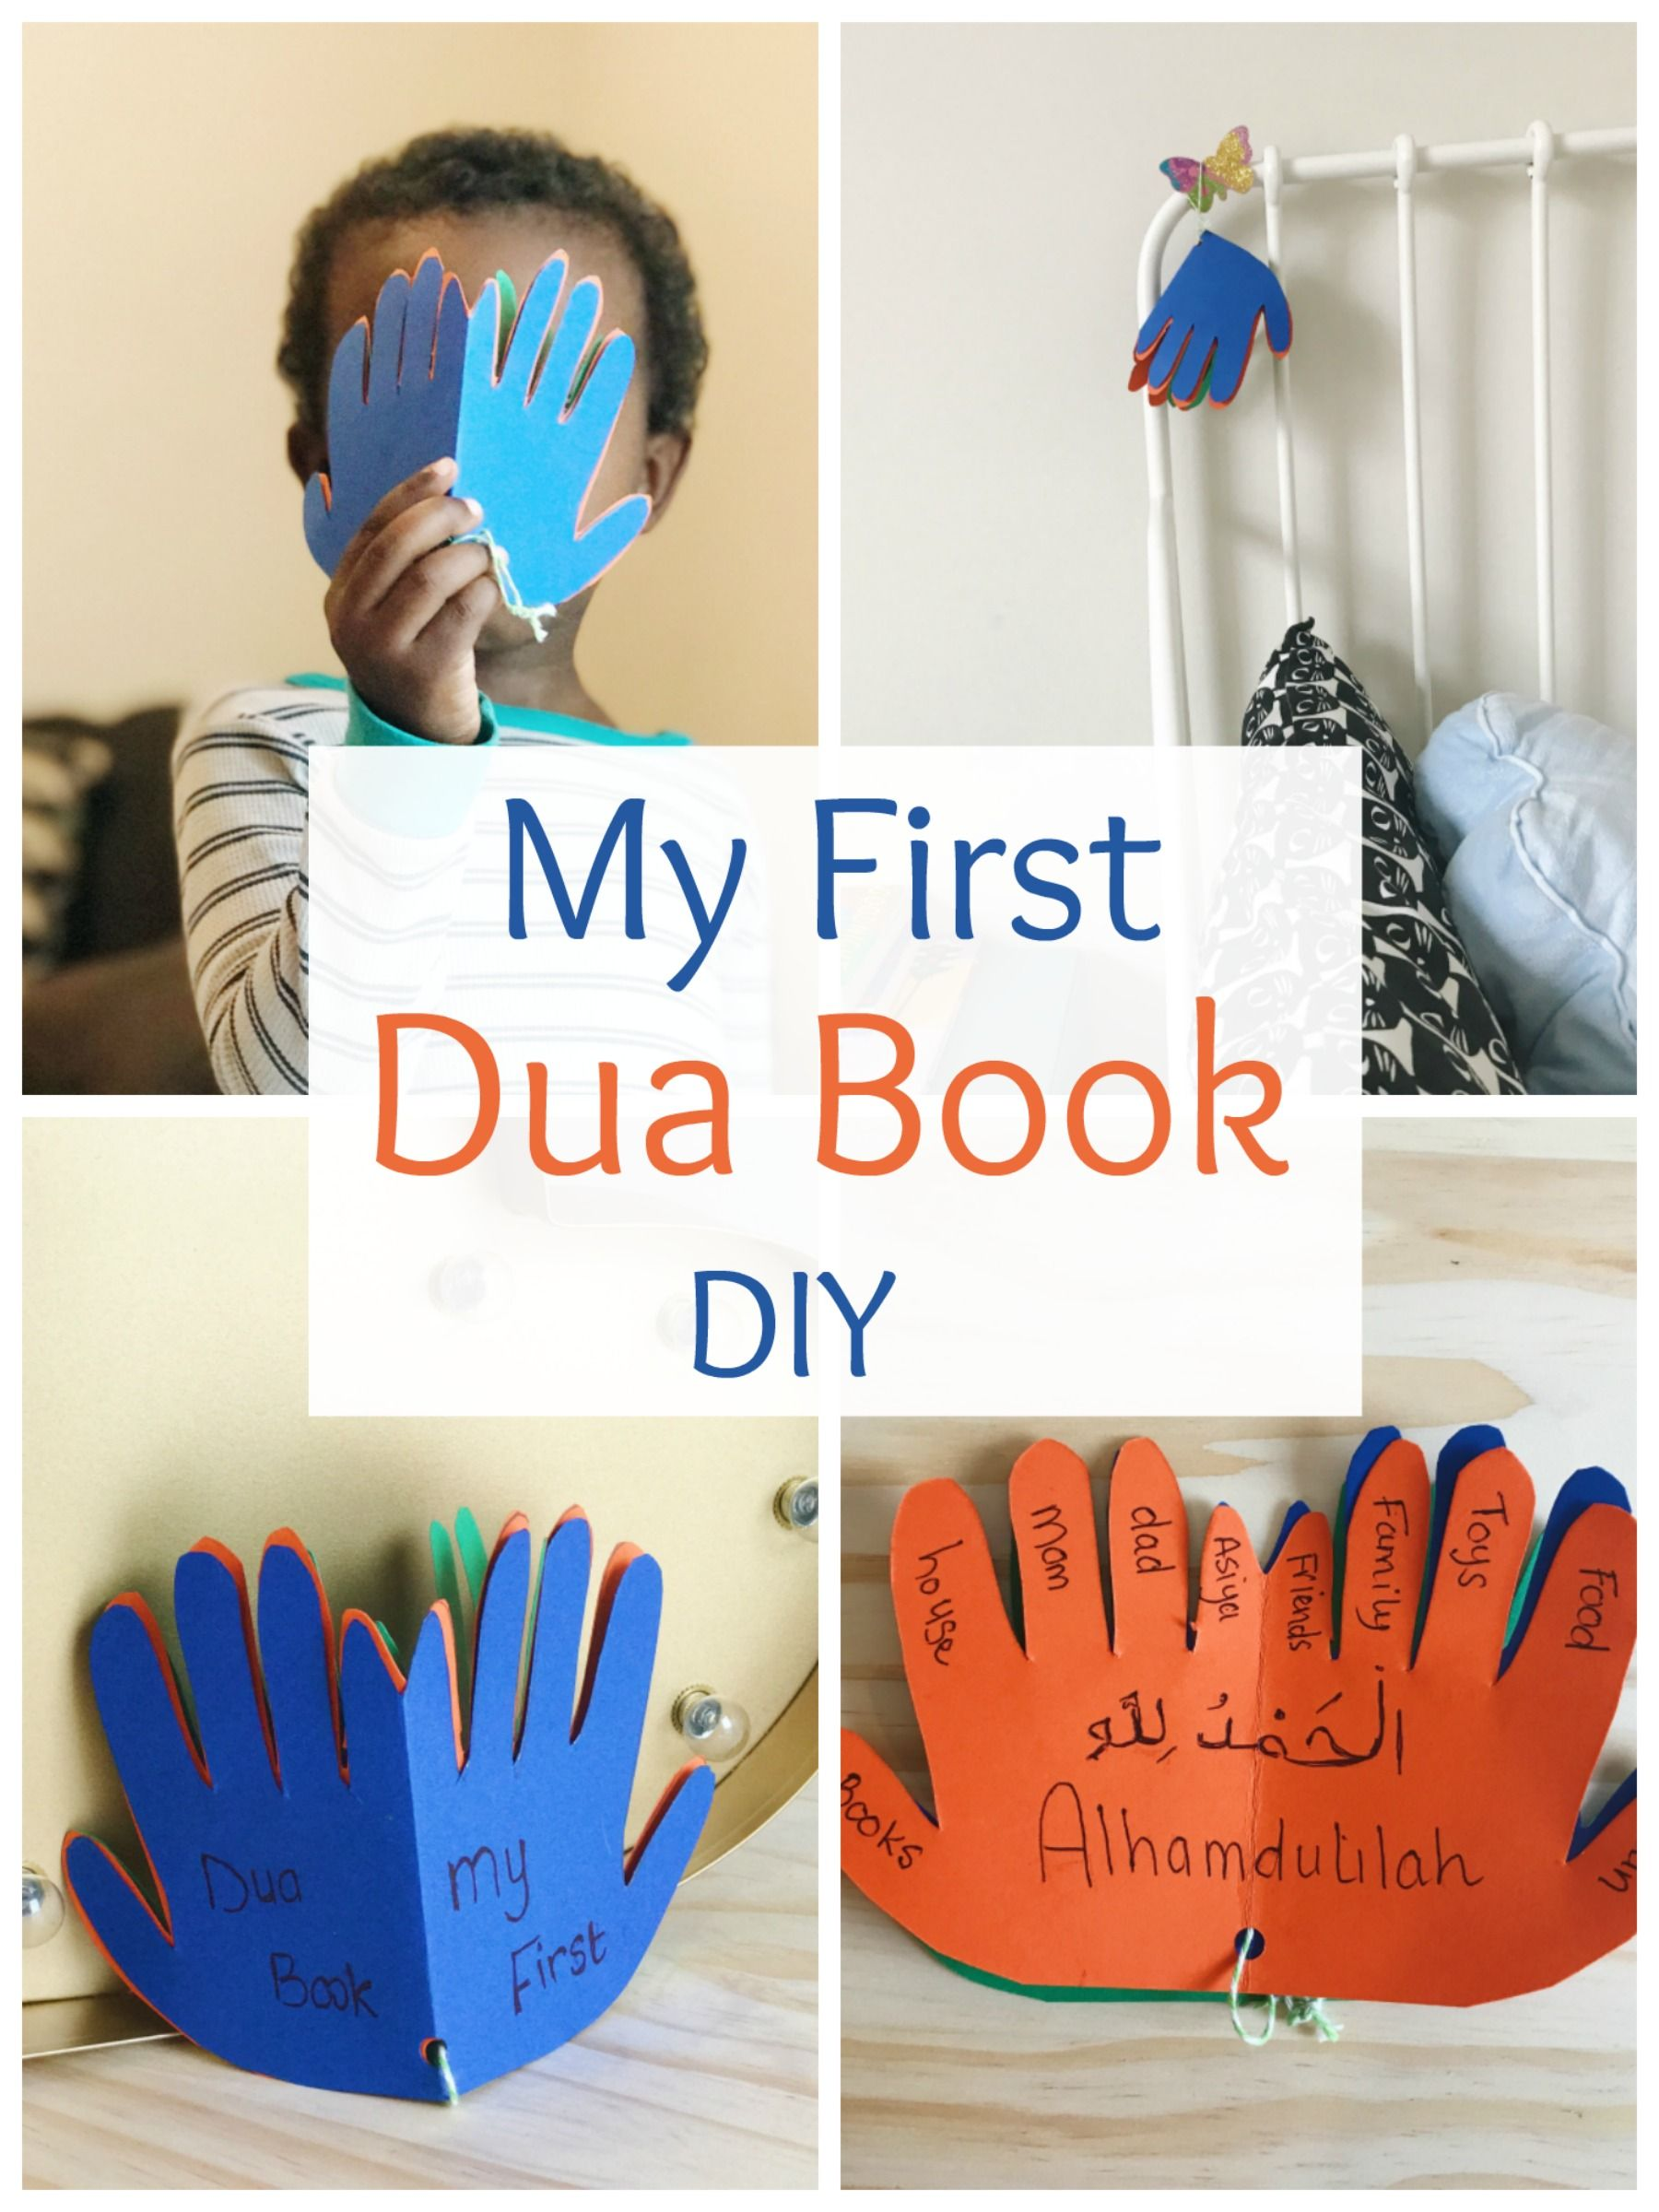 My First Dua Book Diy